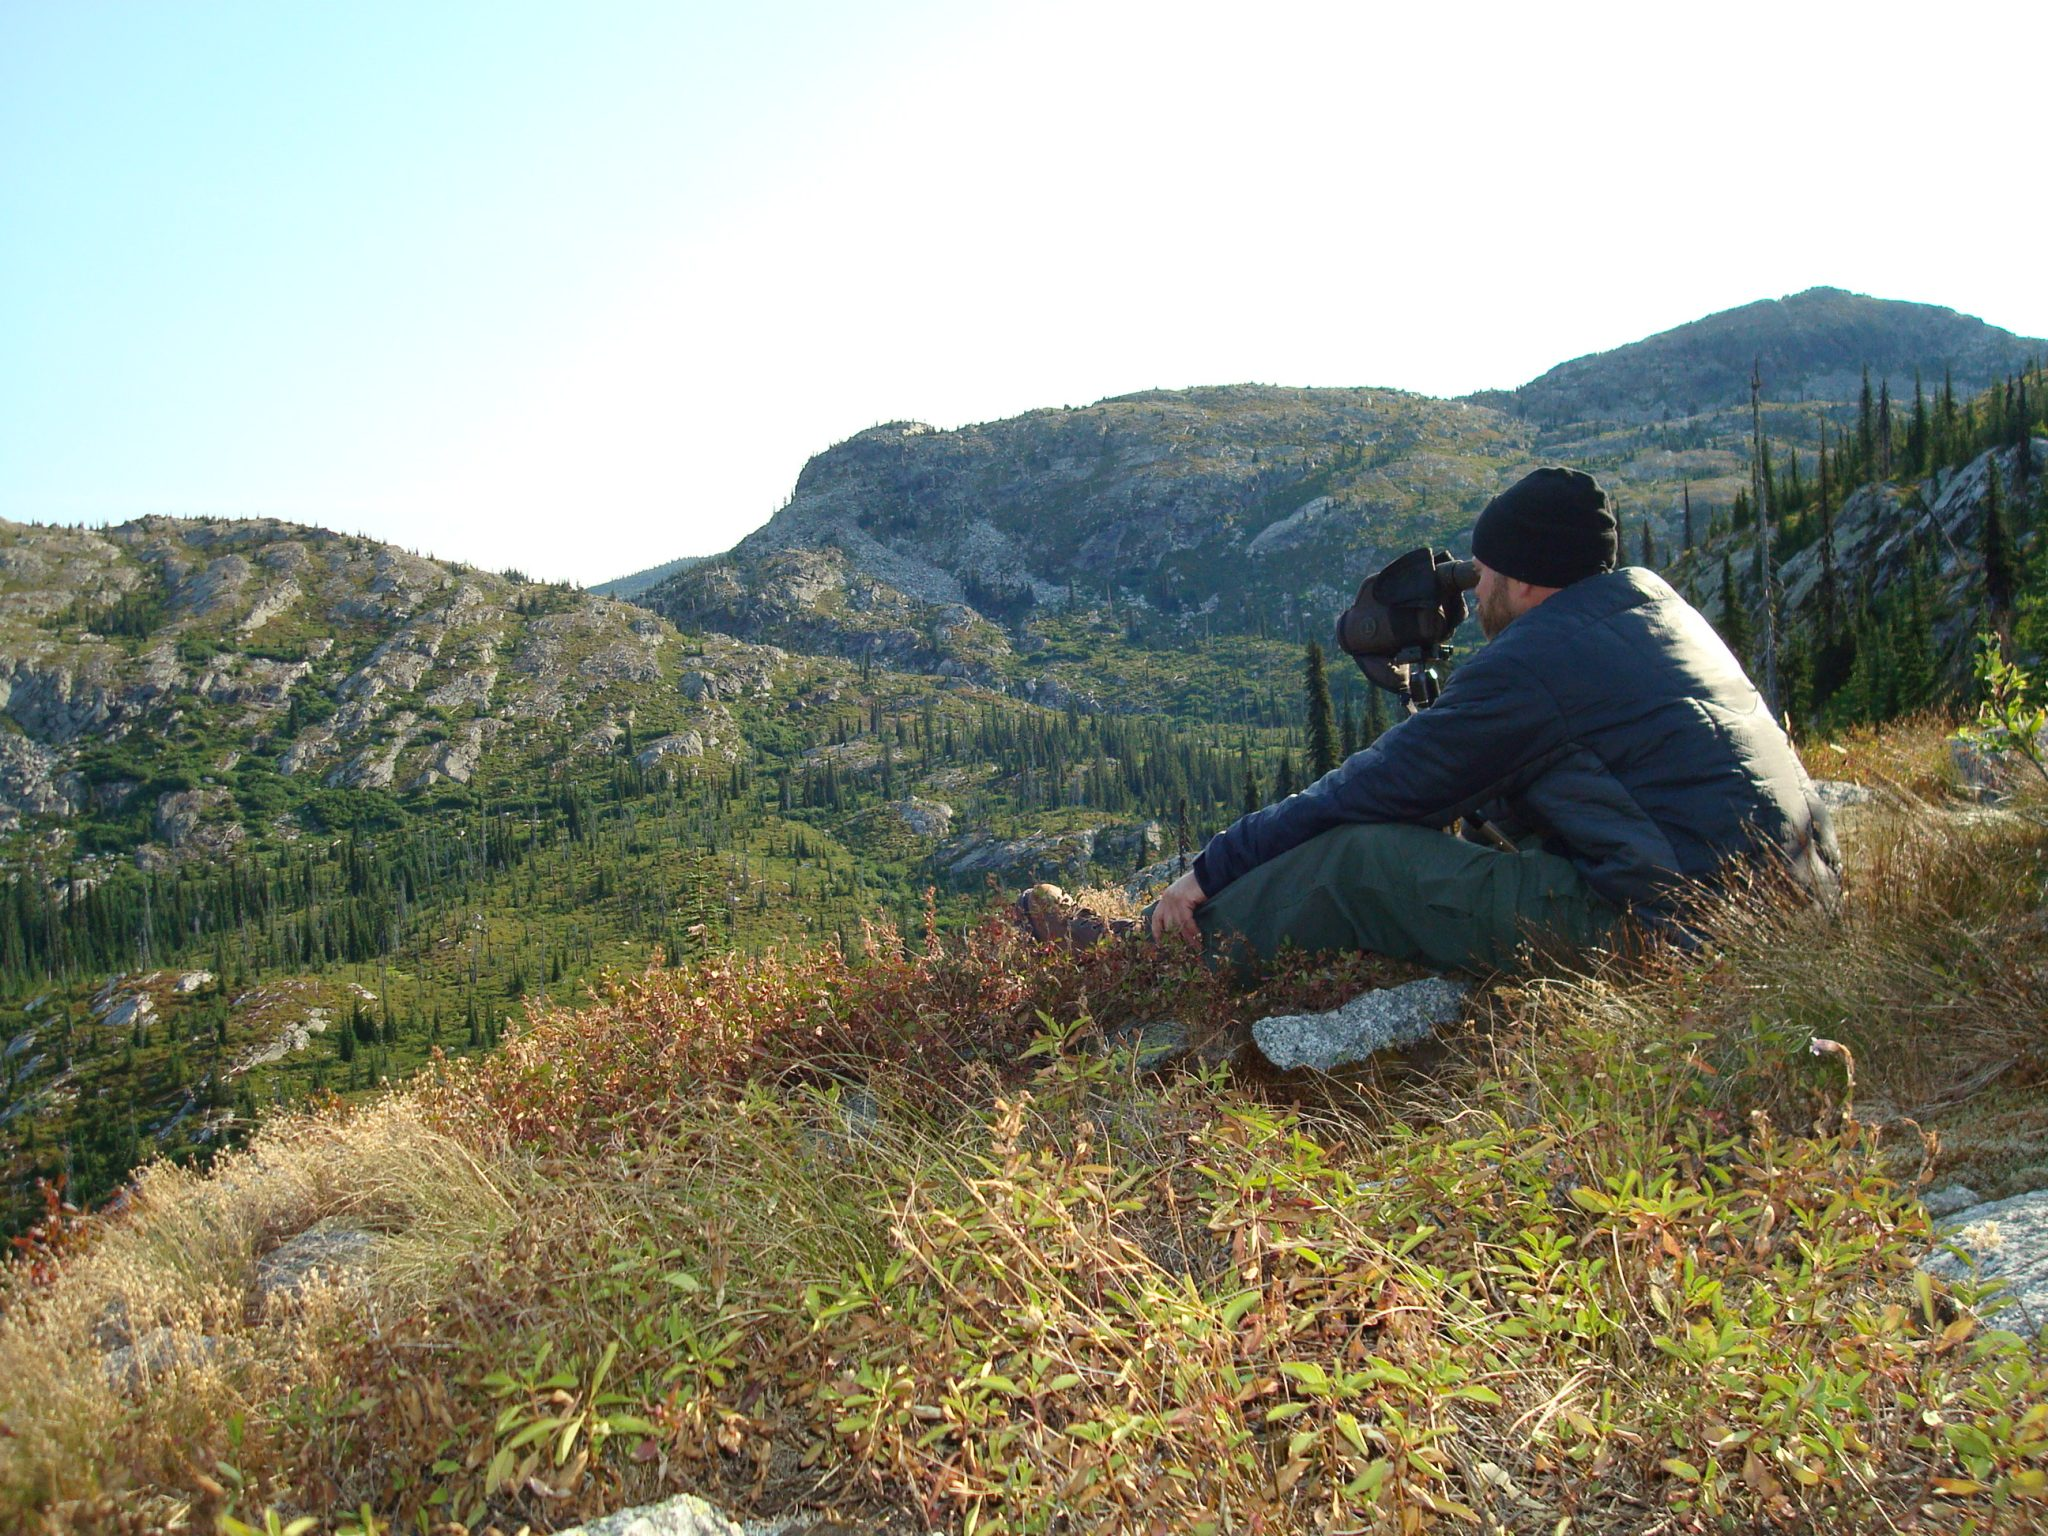 Searching the high country for a shooter